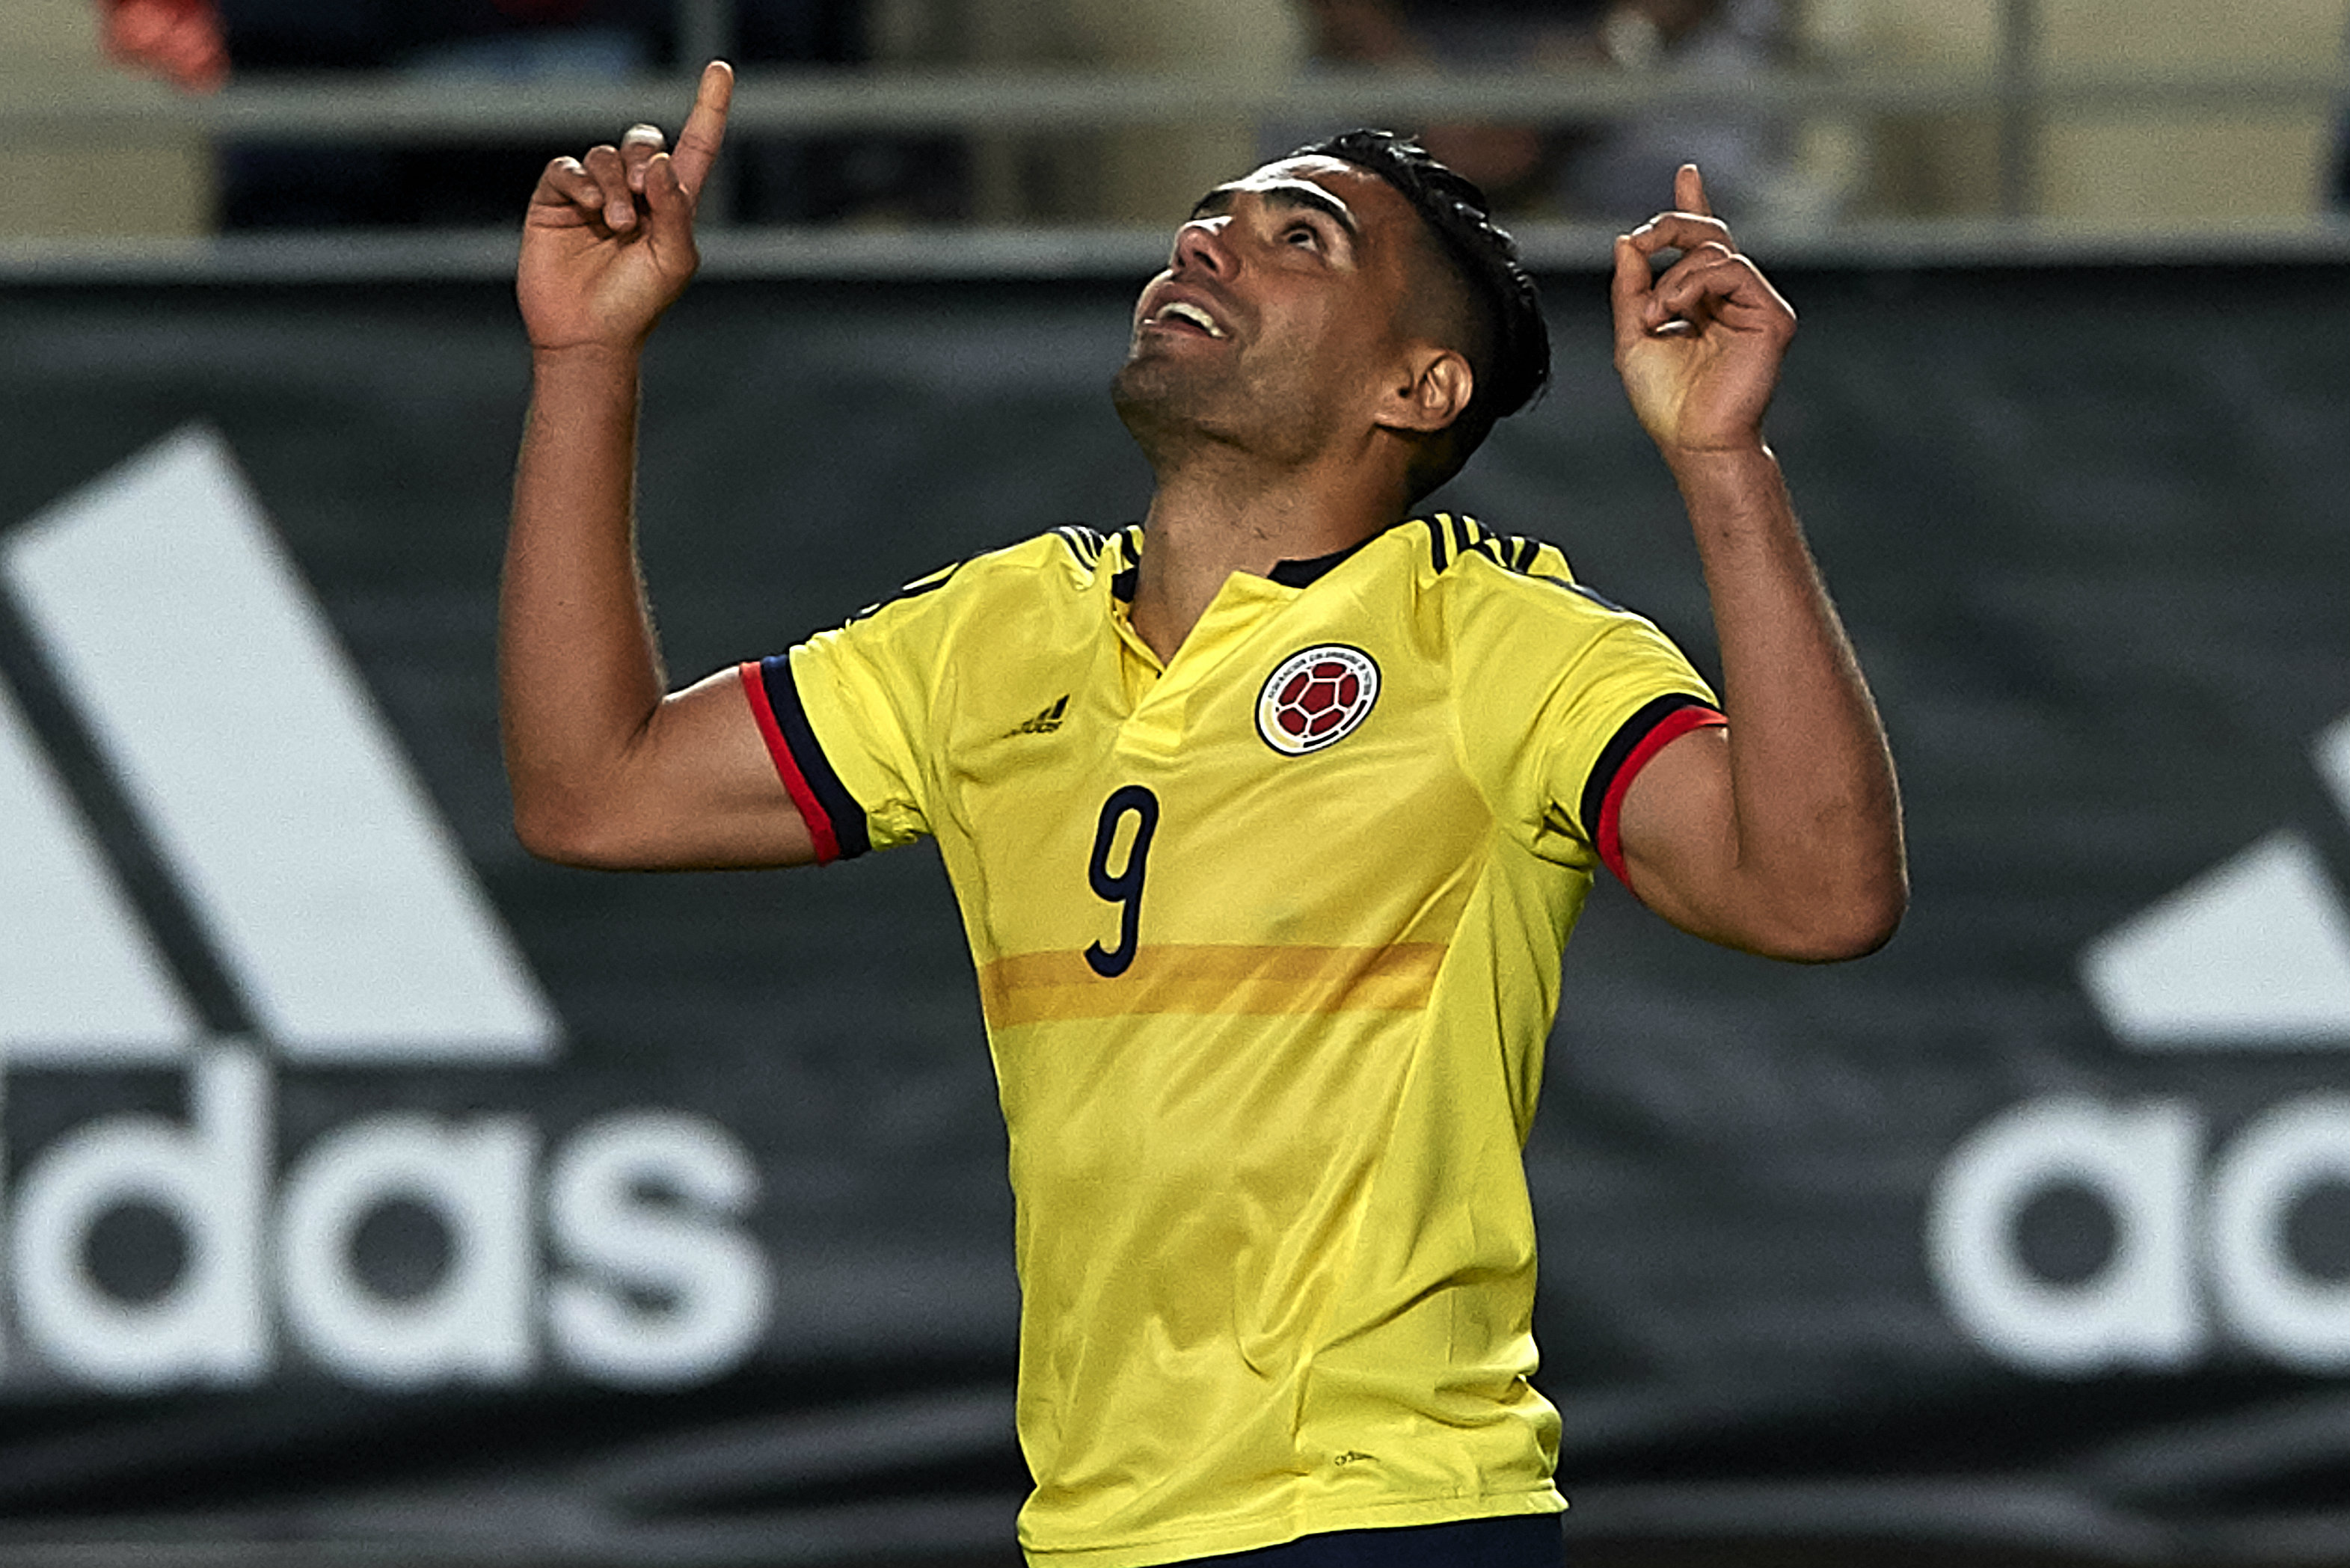 Striker Radomel Falcao is a key man for the Colombians.